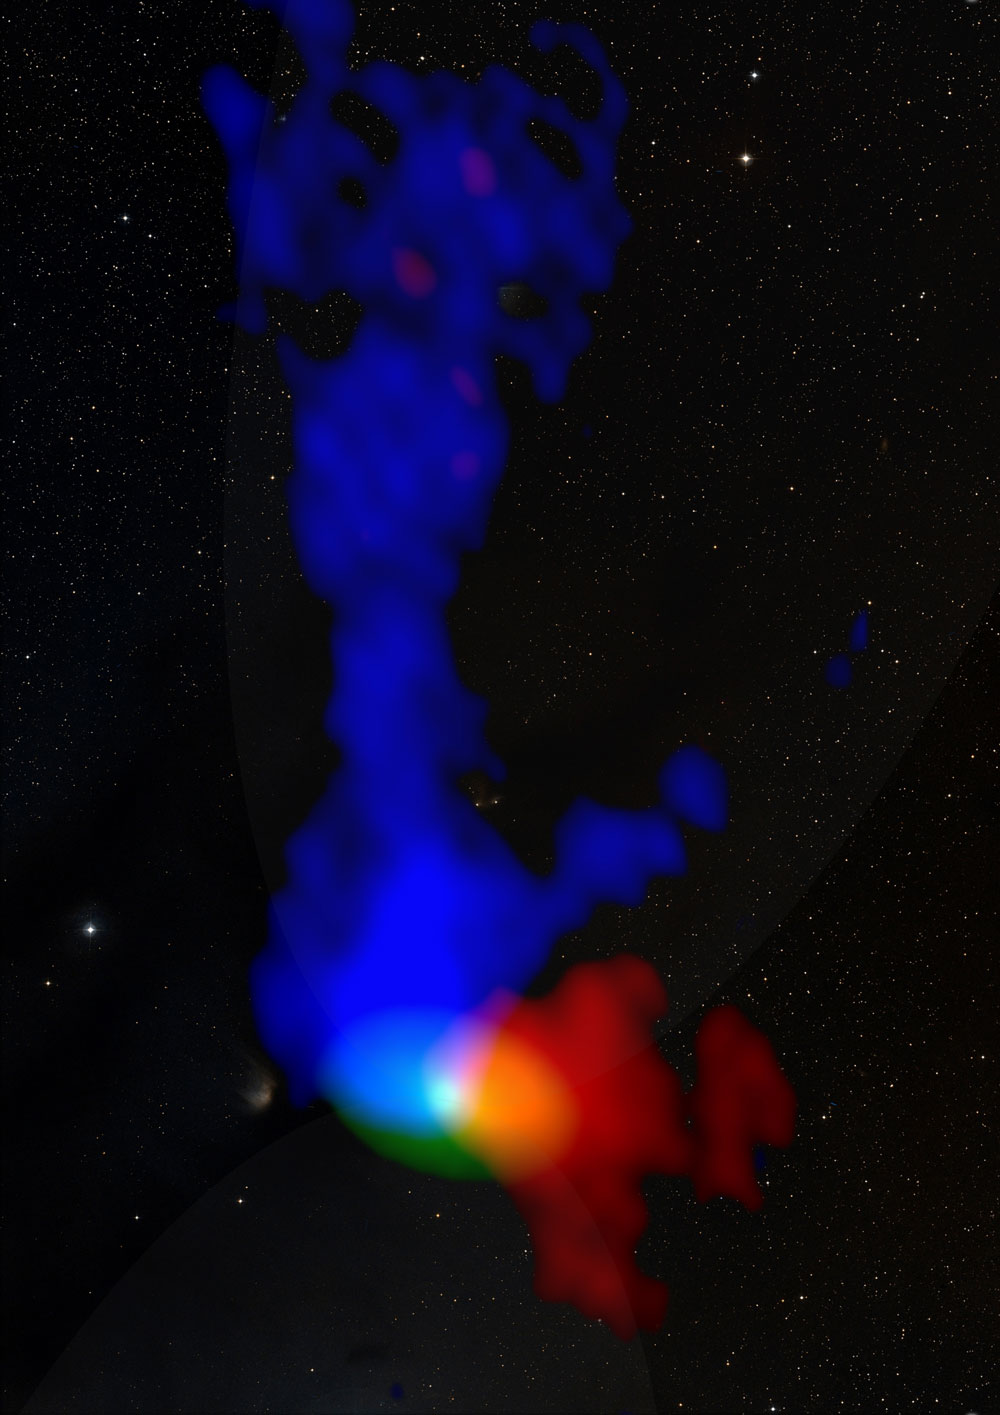 ALMA observations of a young protostar about 450 light years away